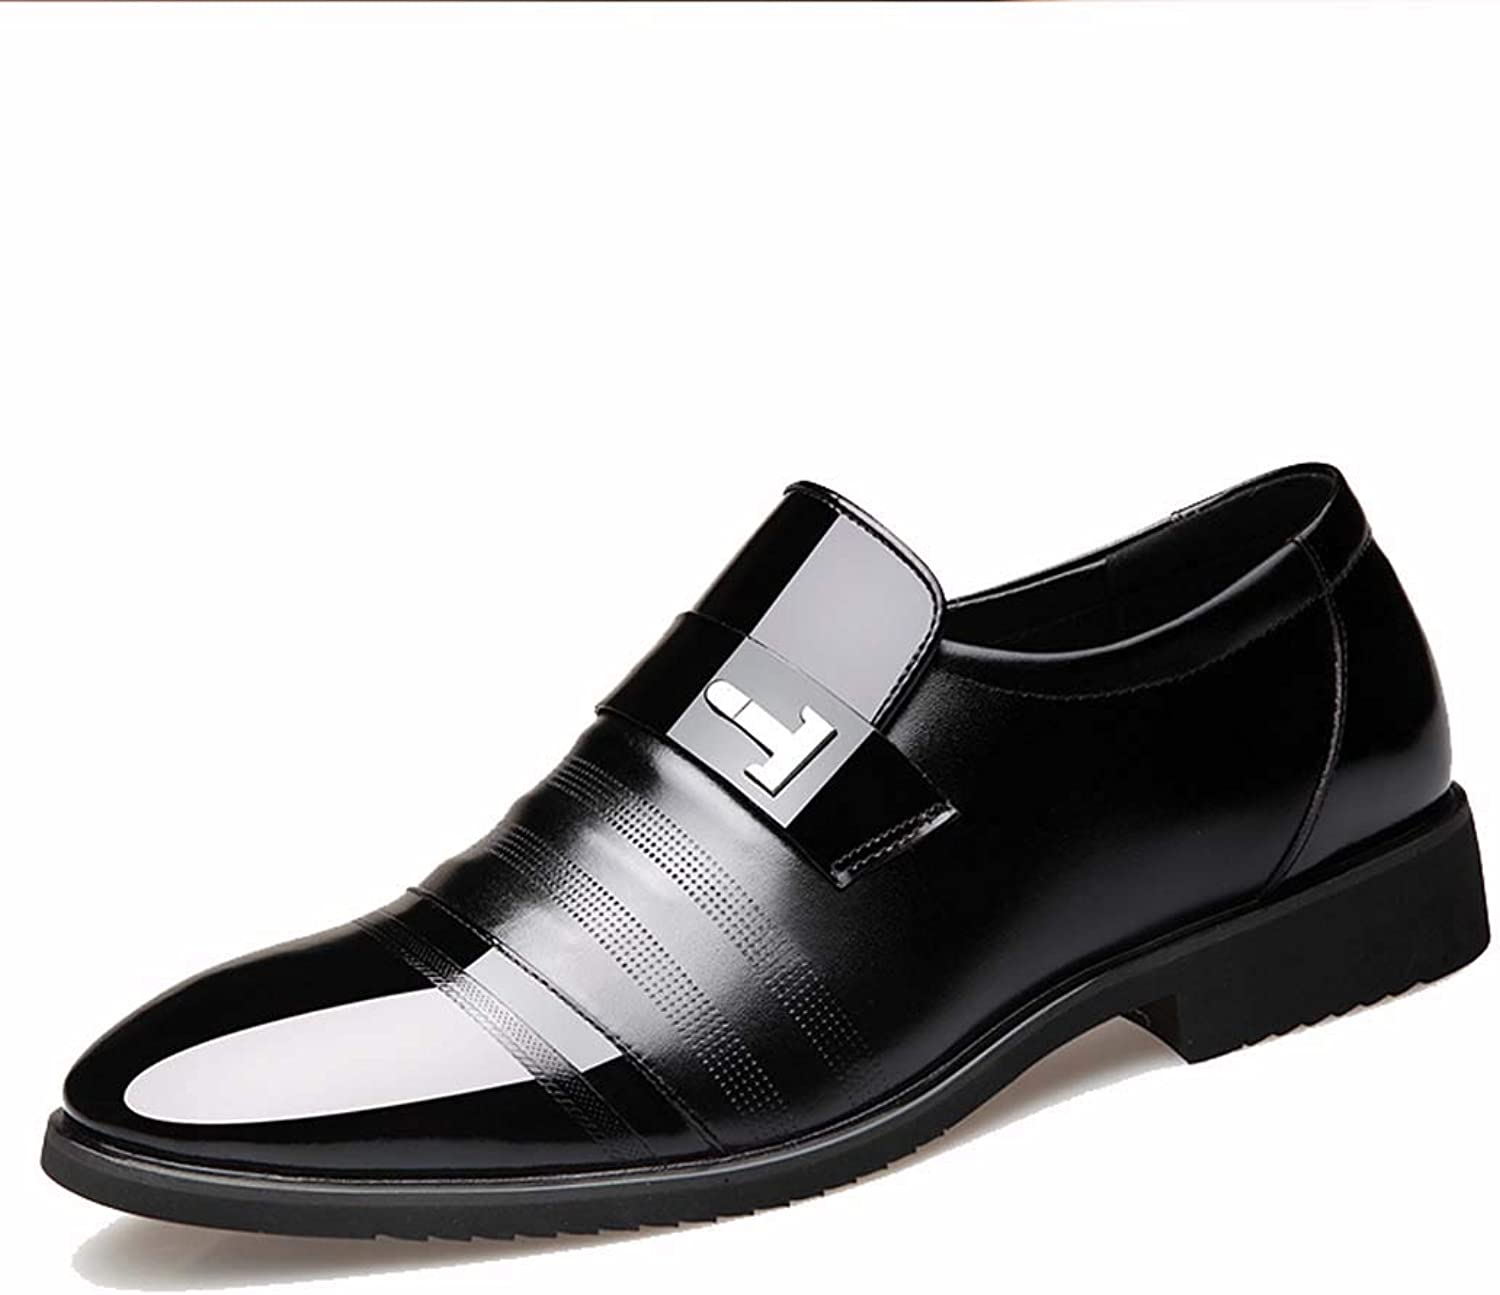 MISS&YG Men's dress shoes business shoes wedding shoes groom dress shoes office shoes party shoes nightclub shoes